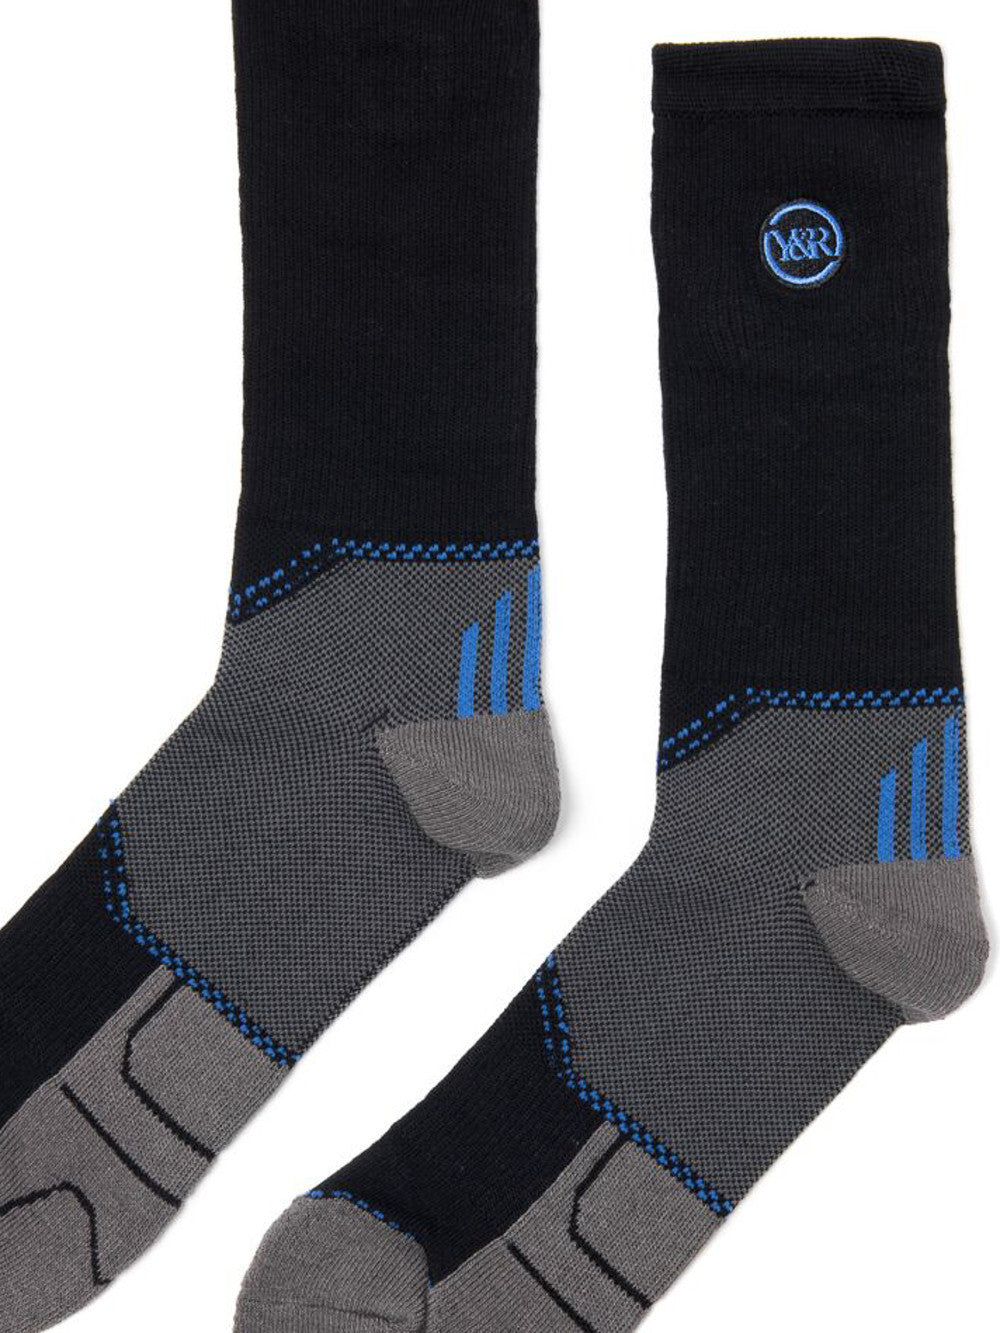 Young and Reckless Mens - Accessories - Socks Premium Athletic Socks - Black